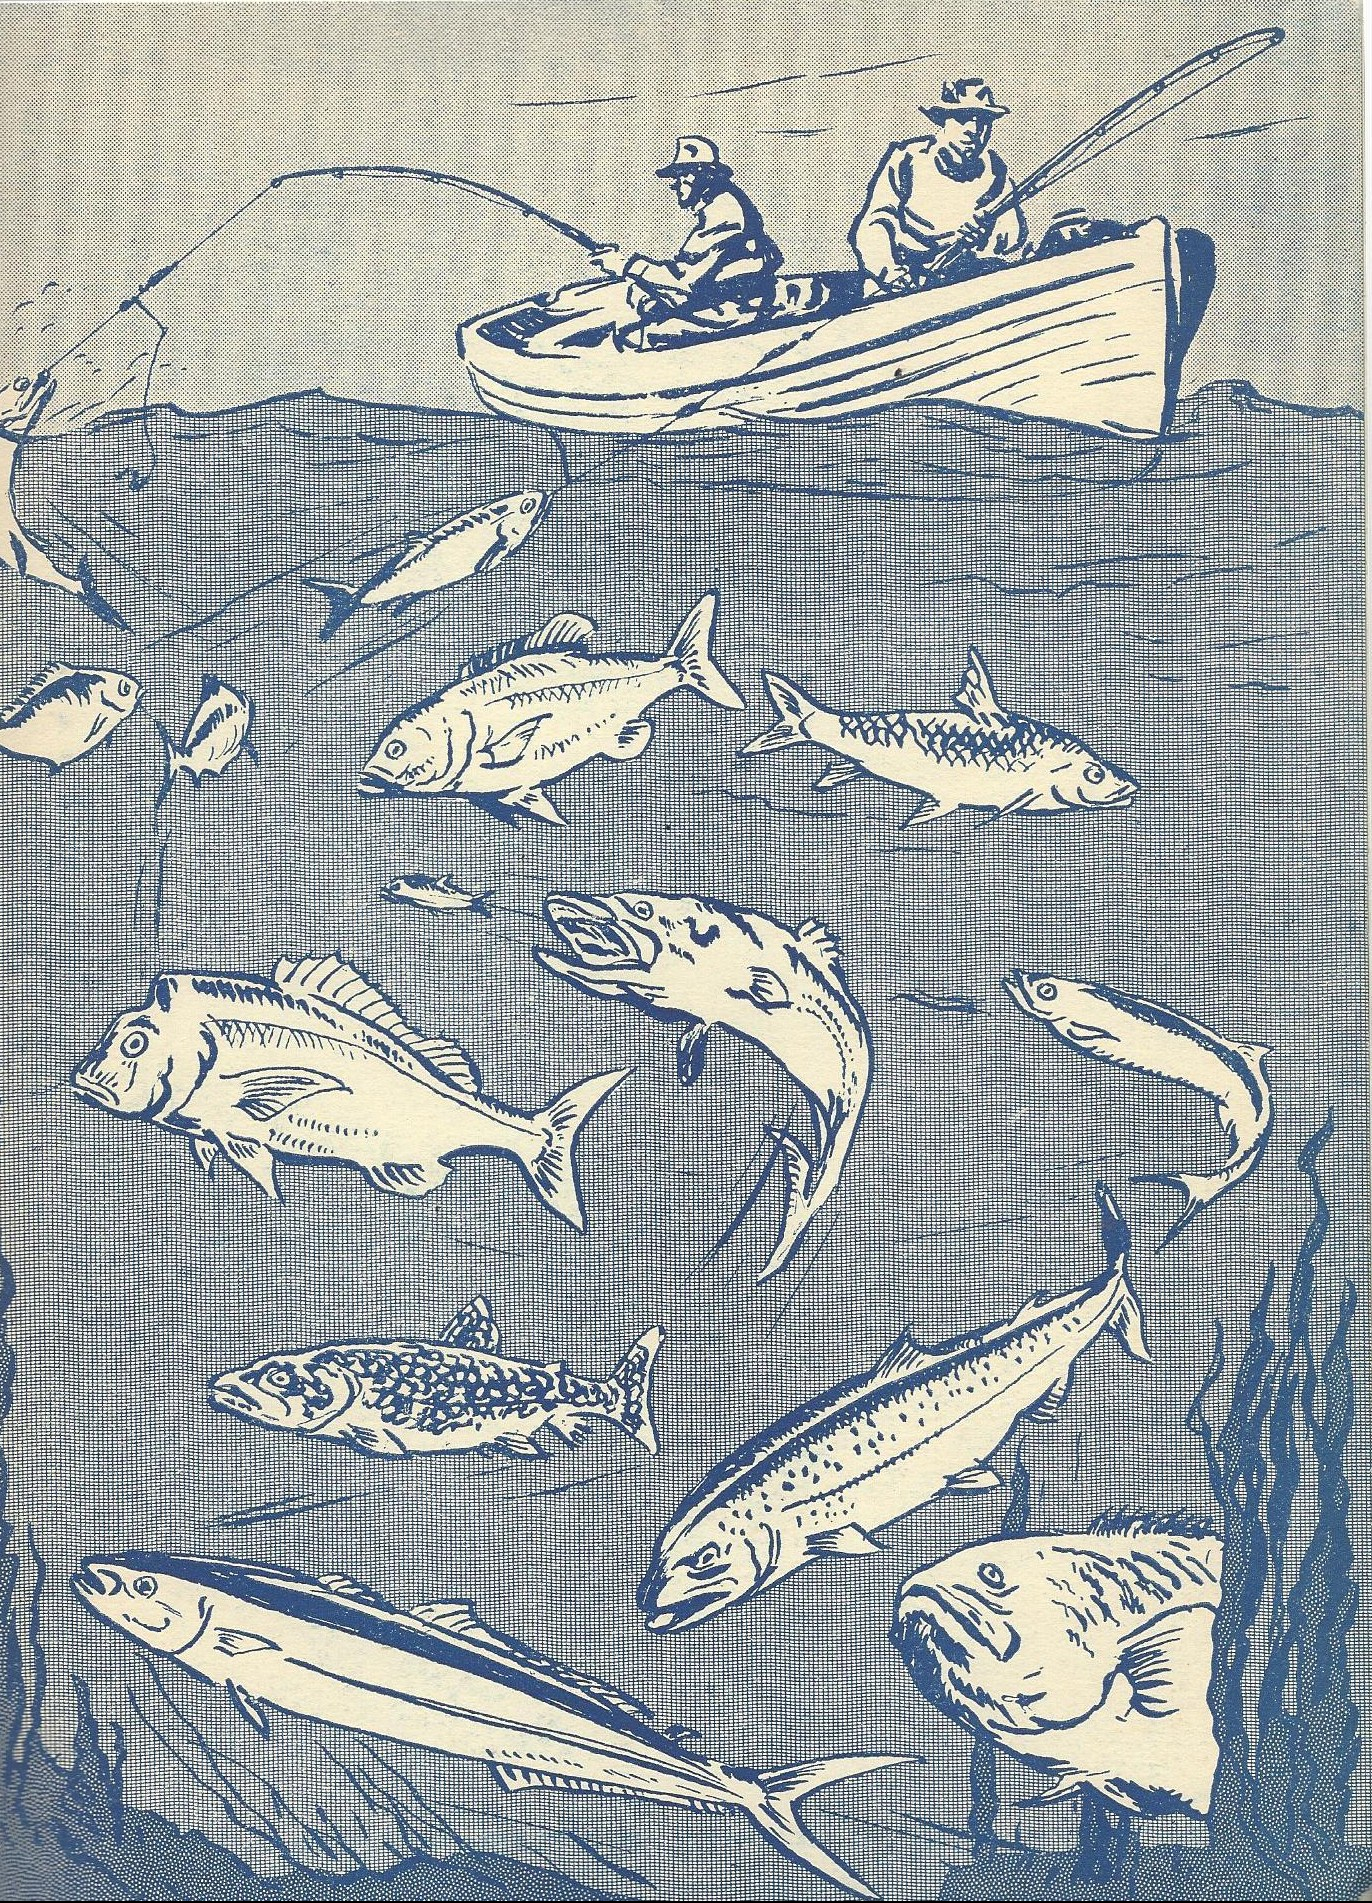 Illustration of two individuals in a boat with fishing poles; multiple varieties of fish are pictured in the water below the boat.